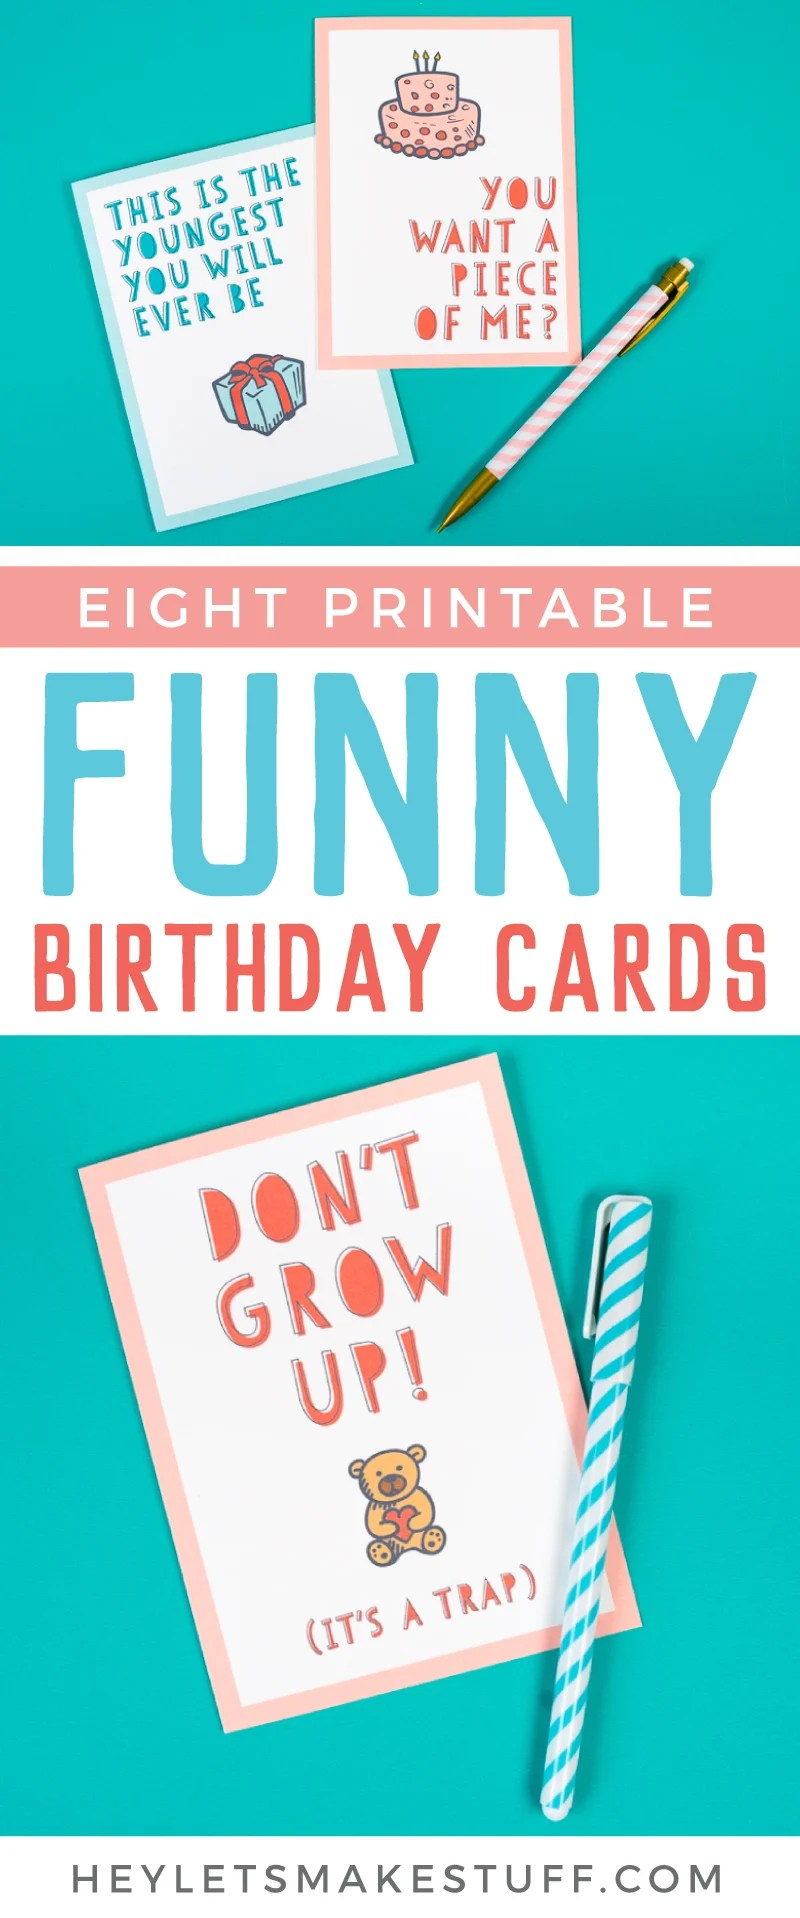 photo about Printable Birthday Cards for Boys named Free of charge Humorous Printable Birthday Playing cards for Older people - 8 Layouts!